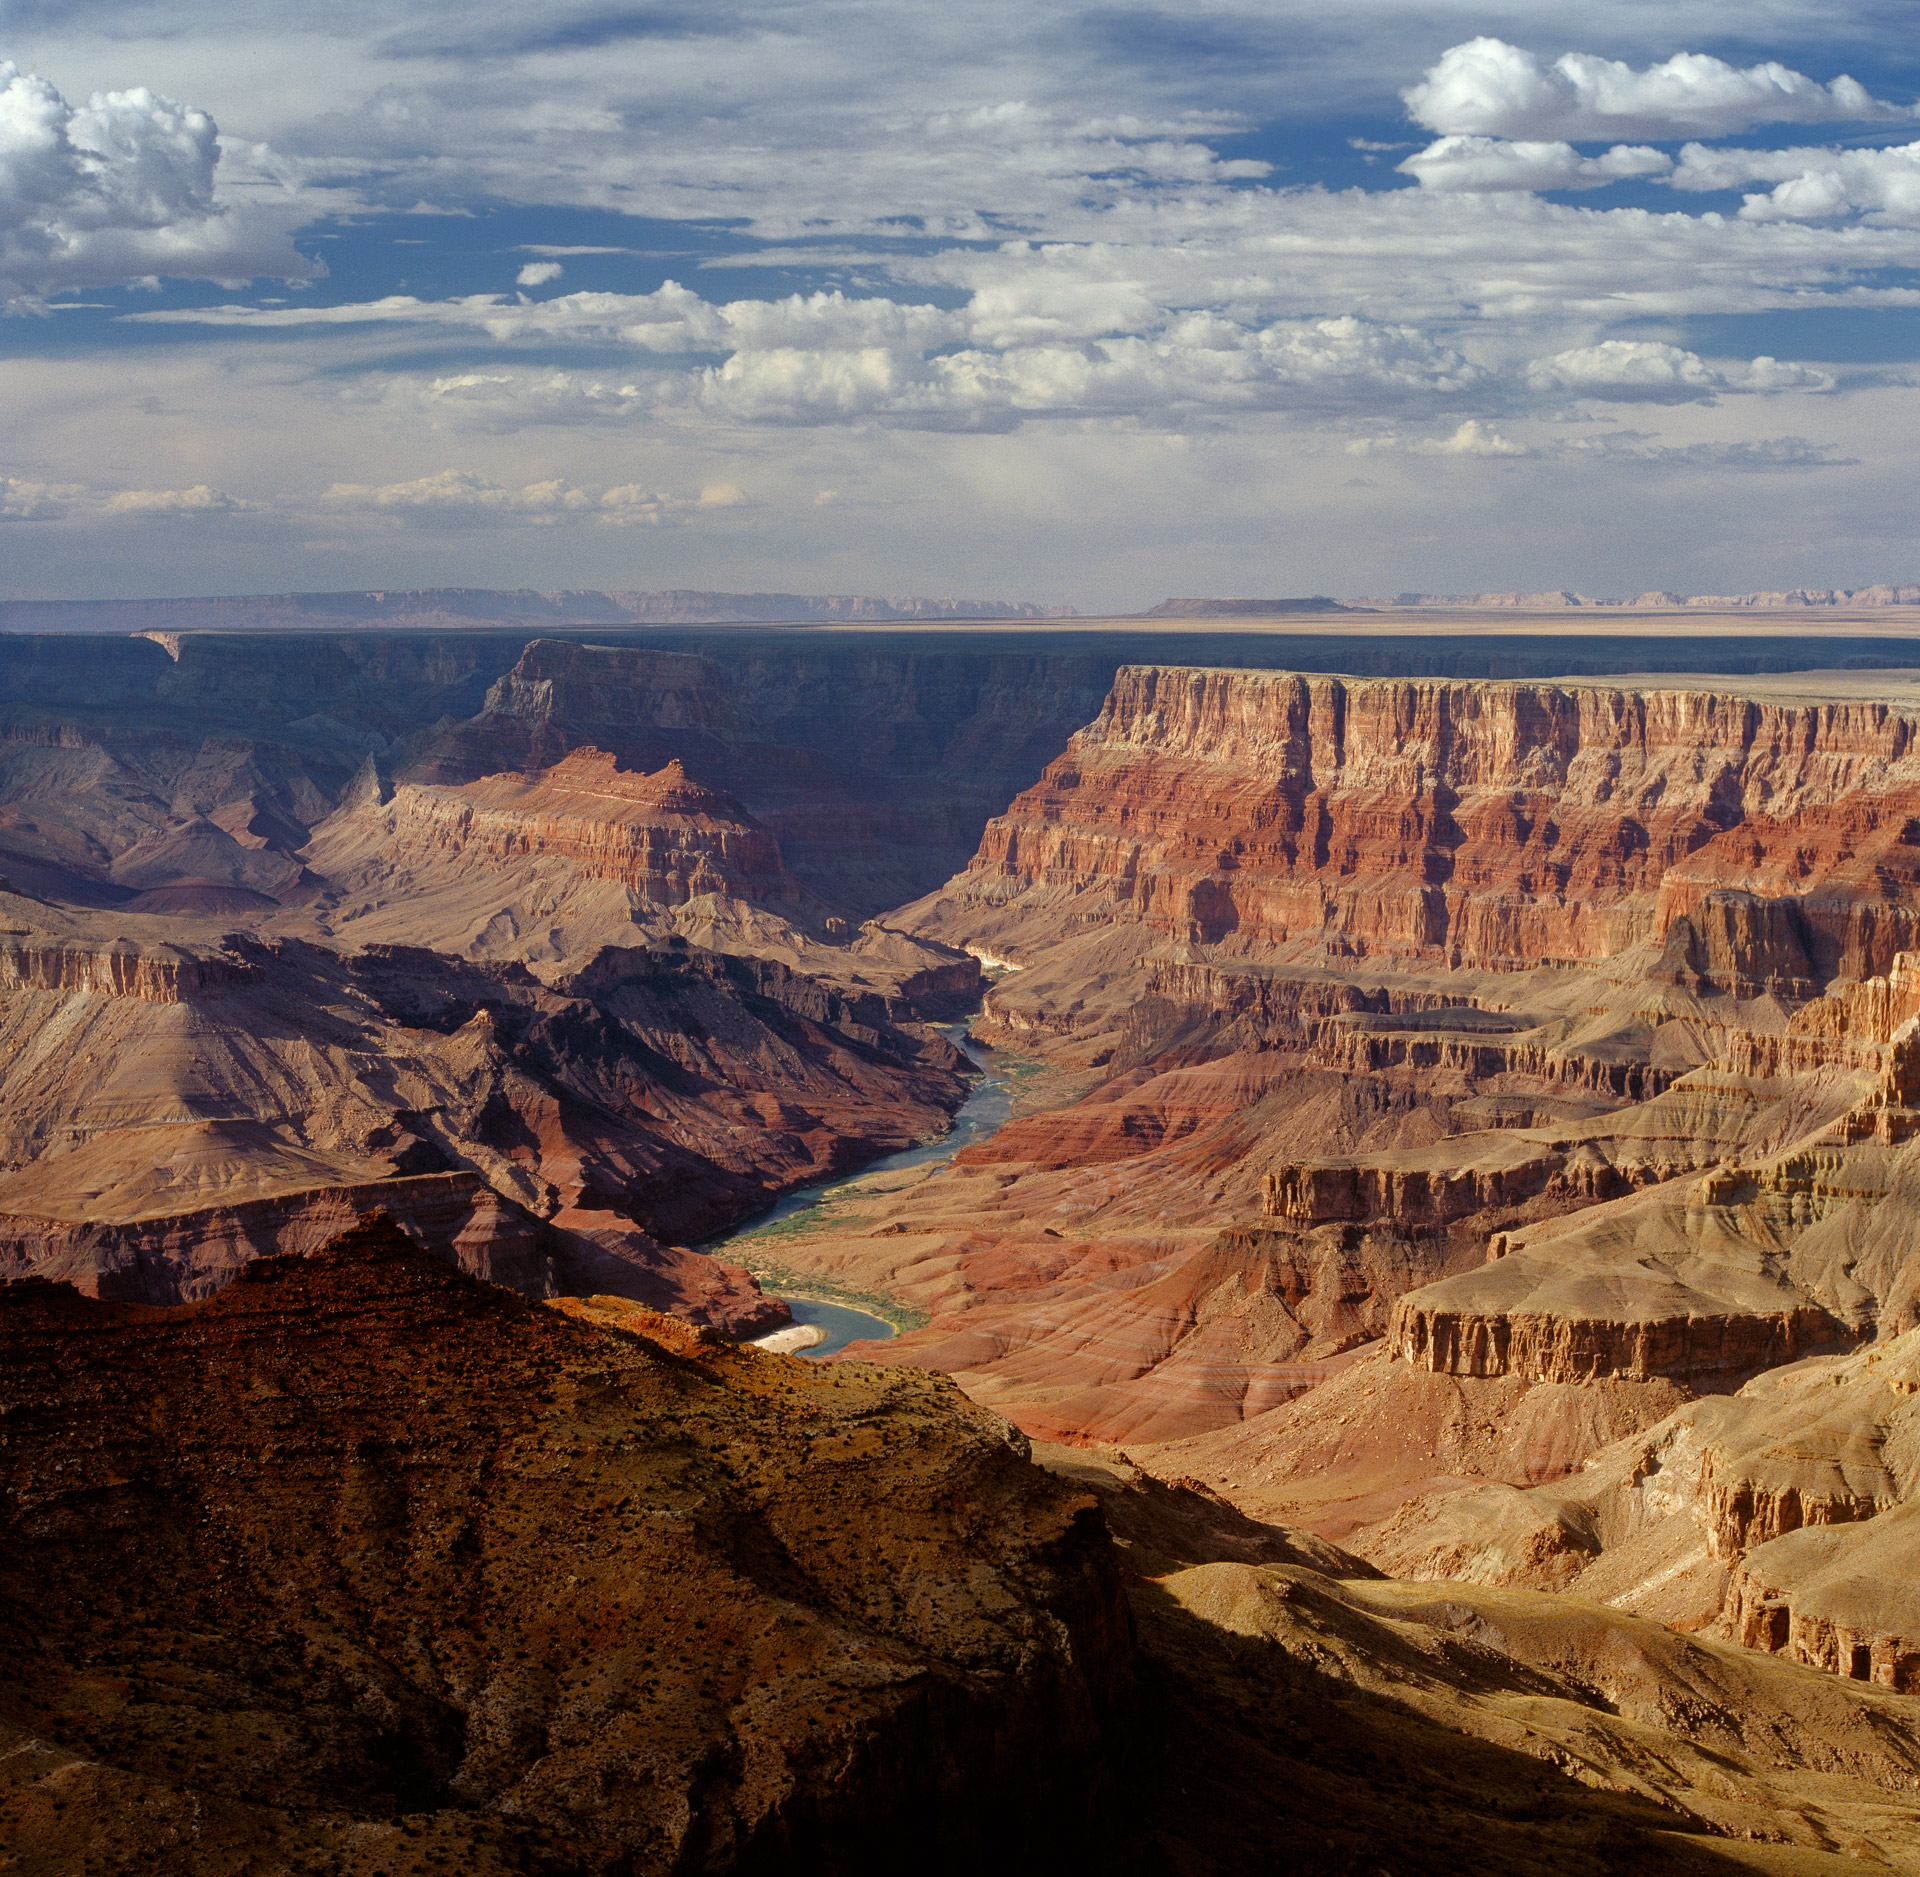 Grand Canyon in Arizona USA is a dream come true for a landscape photographer